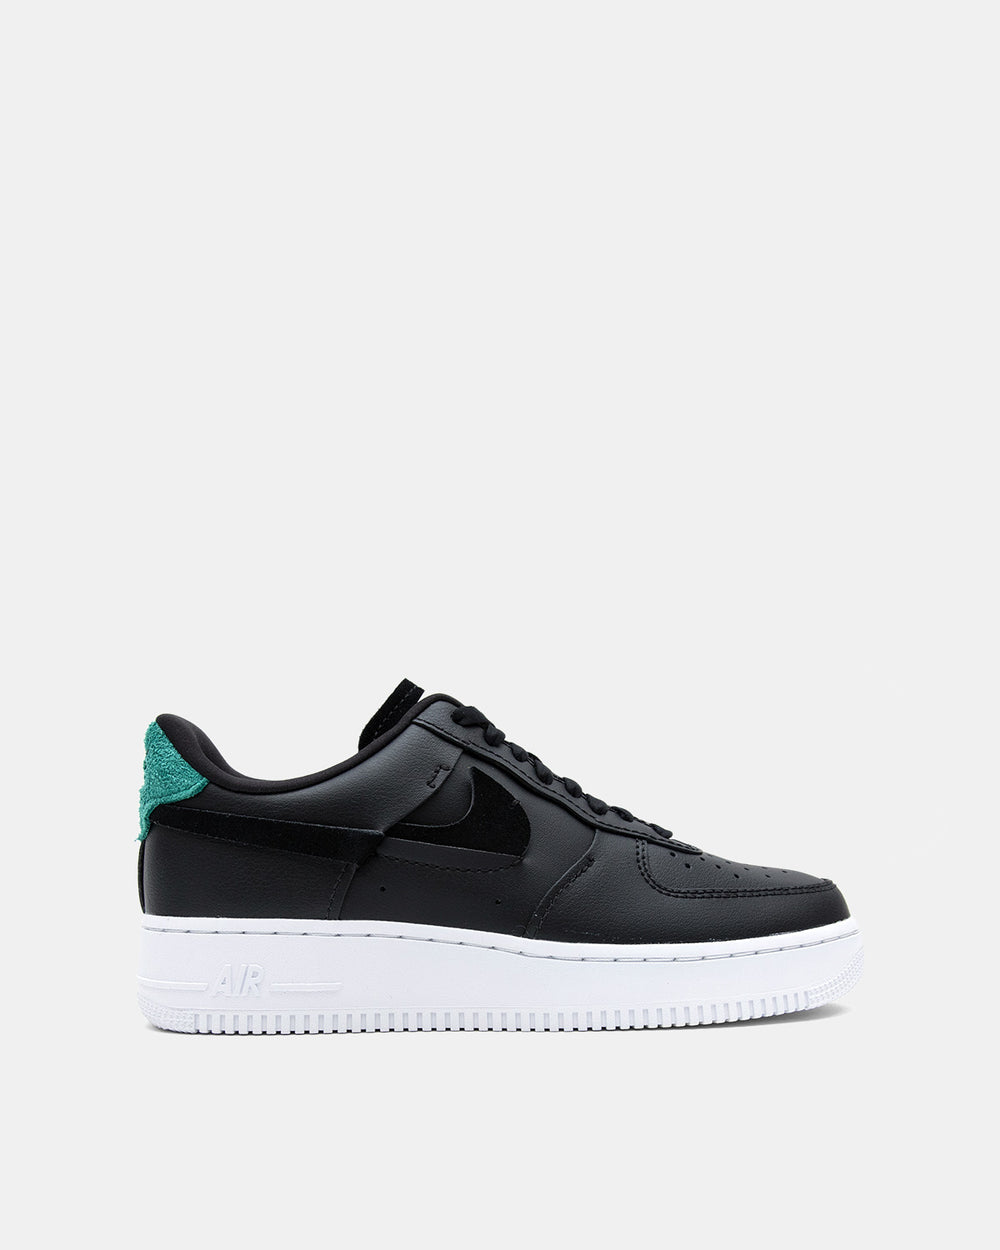 Nike - Women's Air Force 1 Vandalized LX (Black | Anthracite | Mystic Green)